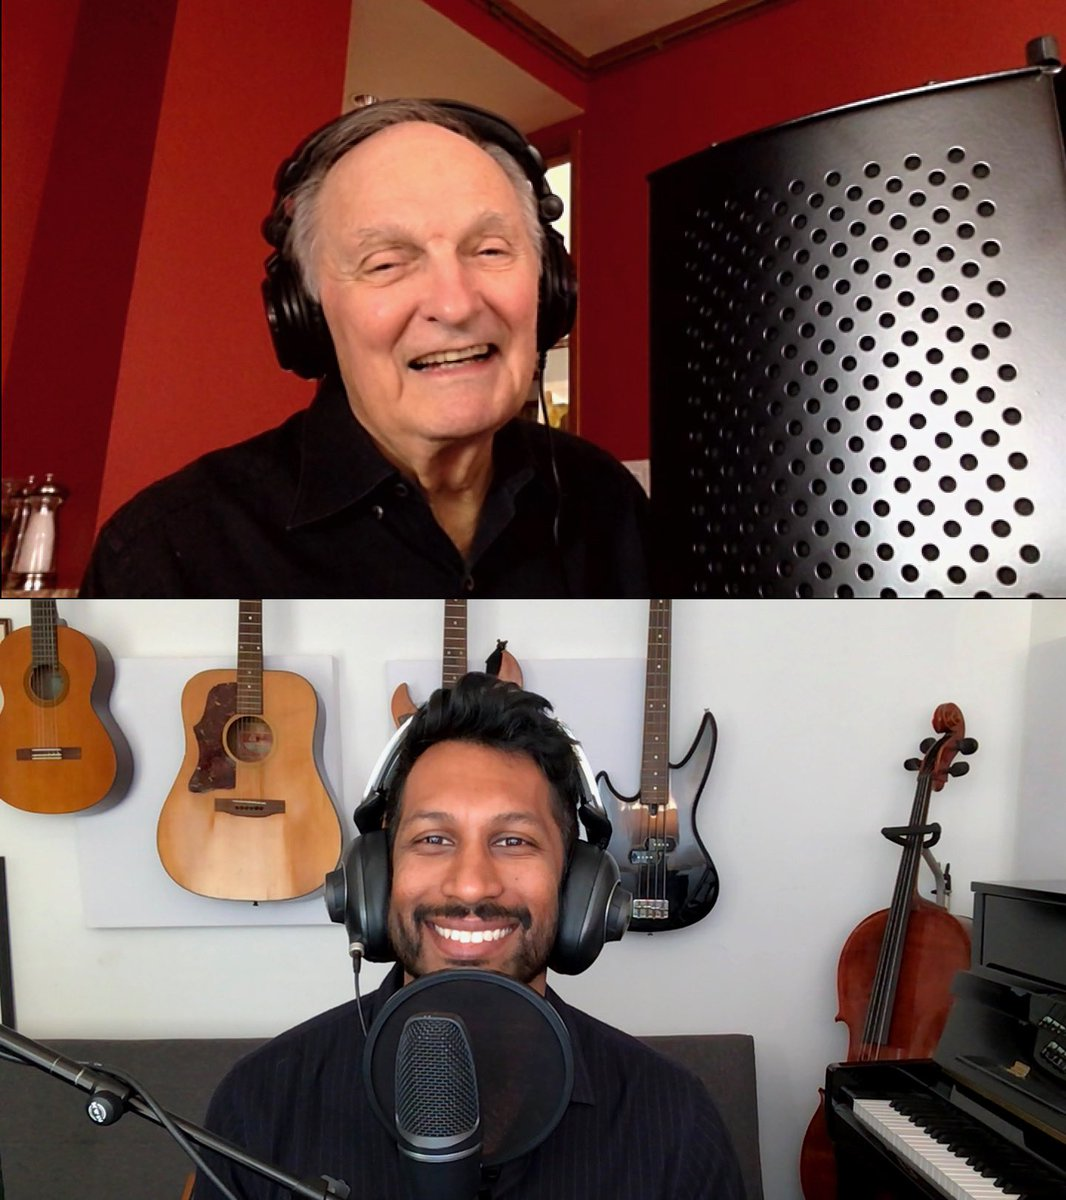 In @alanalda we trust. thewestwingweekly.com/620